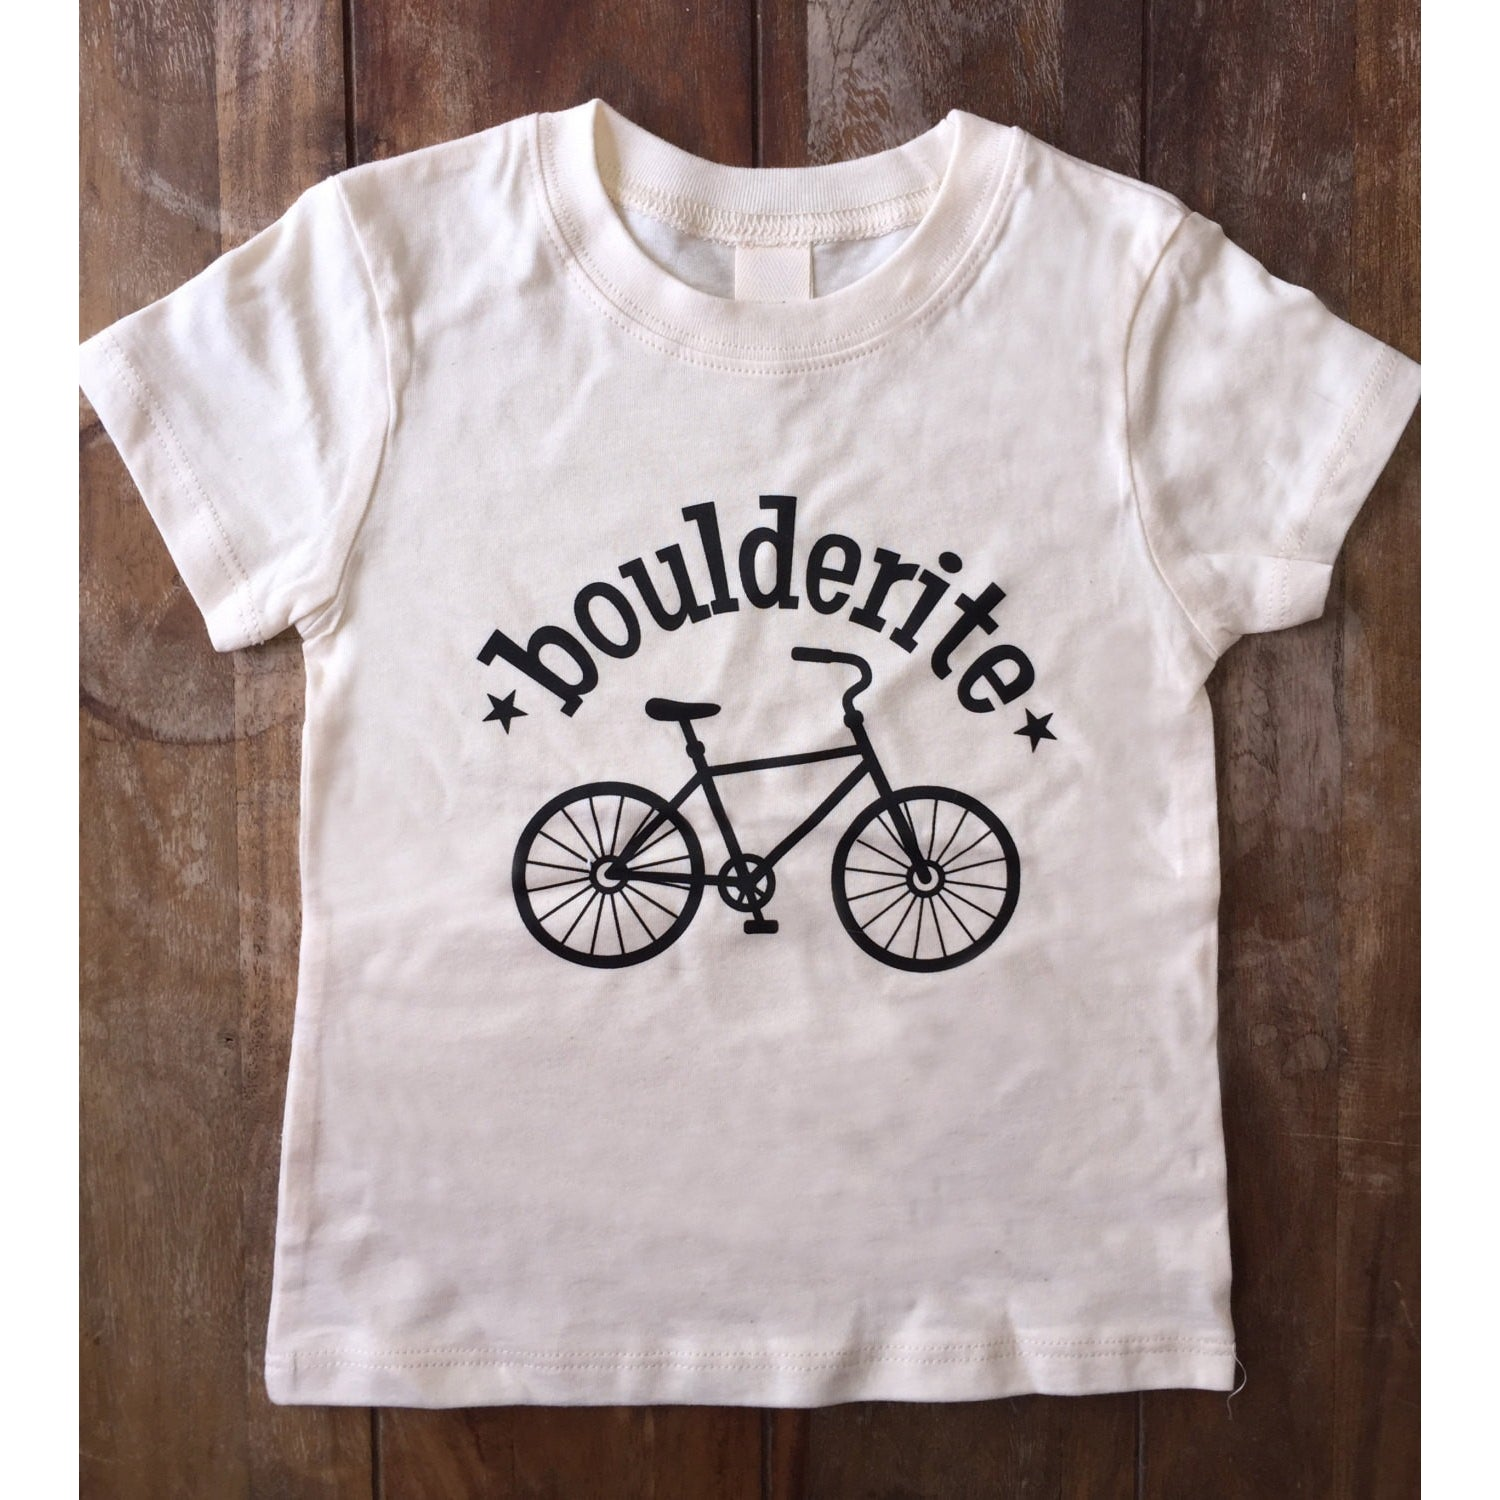 Boulderite Organic cotton Boulder Colorado Tshirt-Hens and Chicas